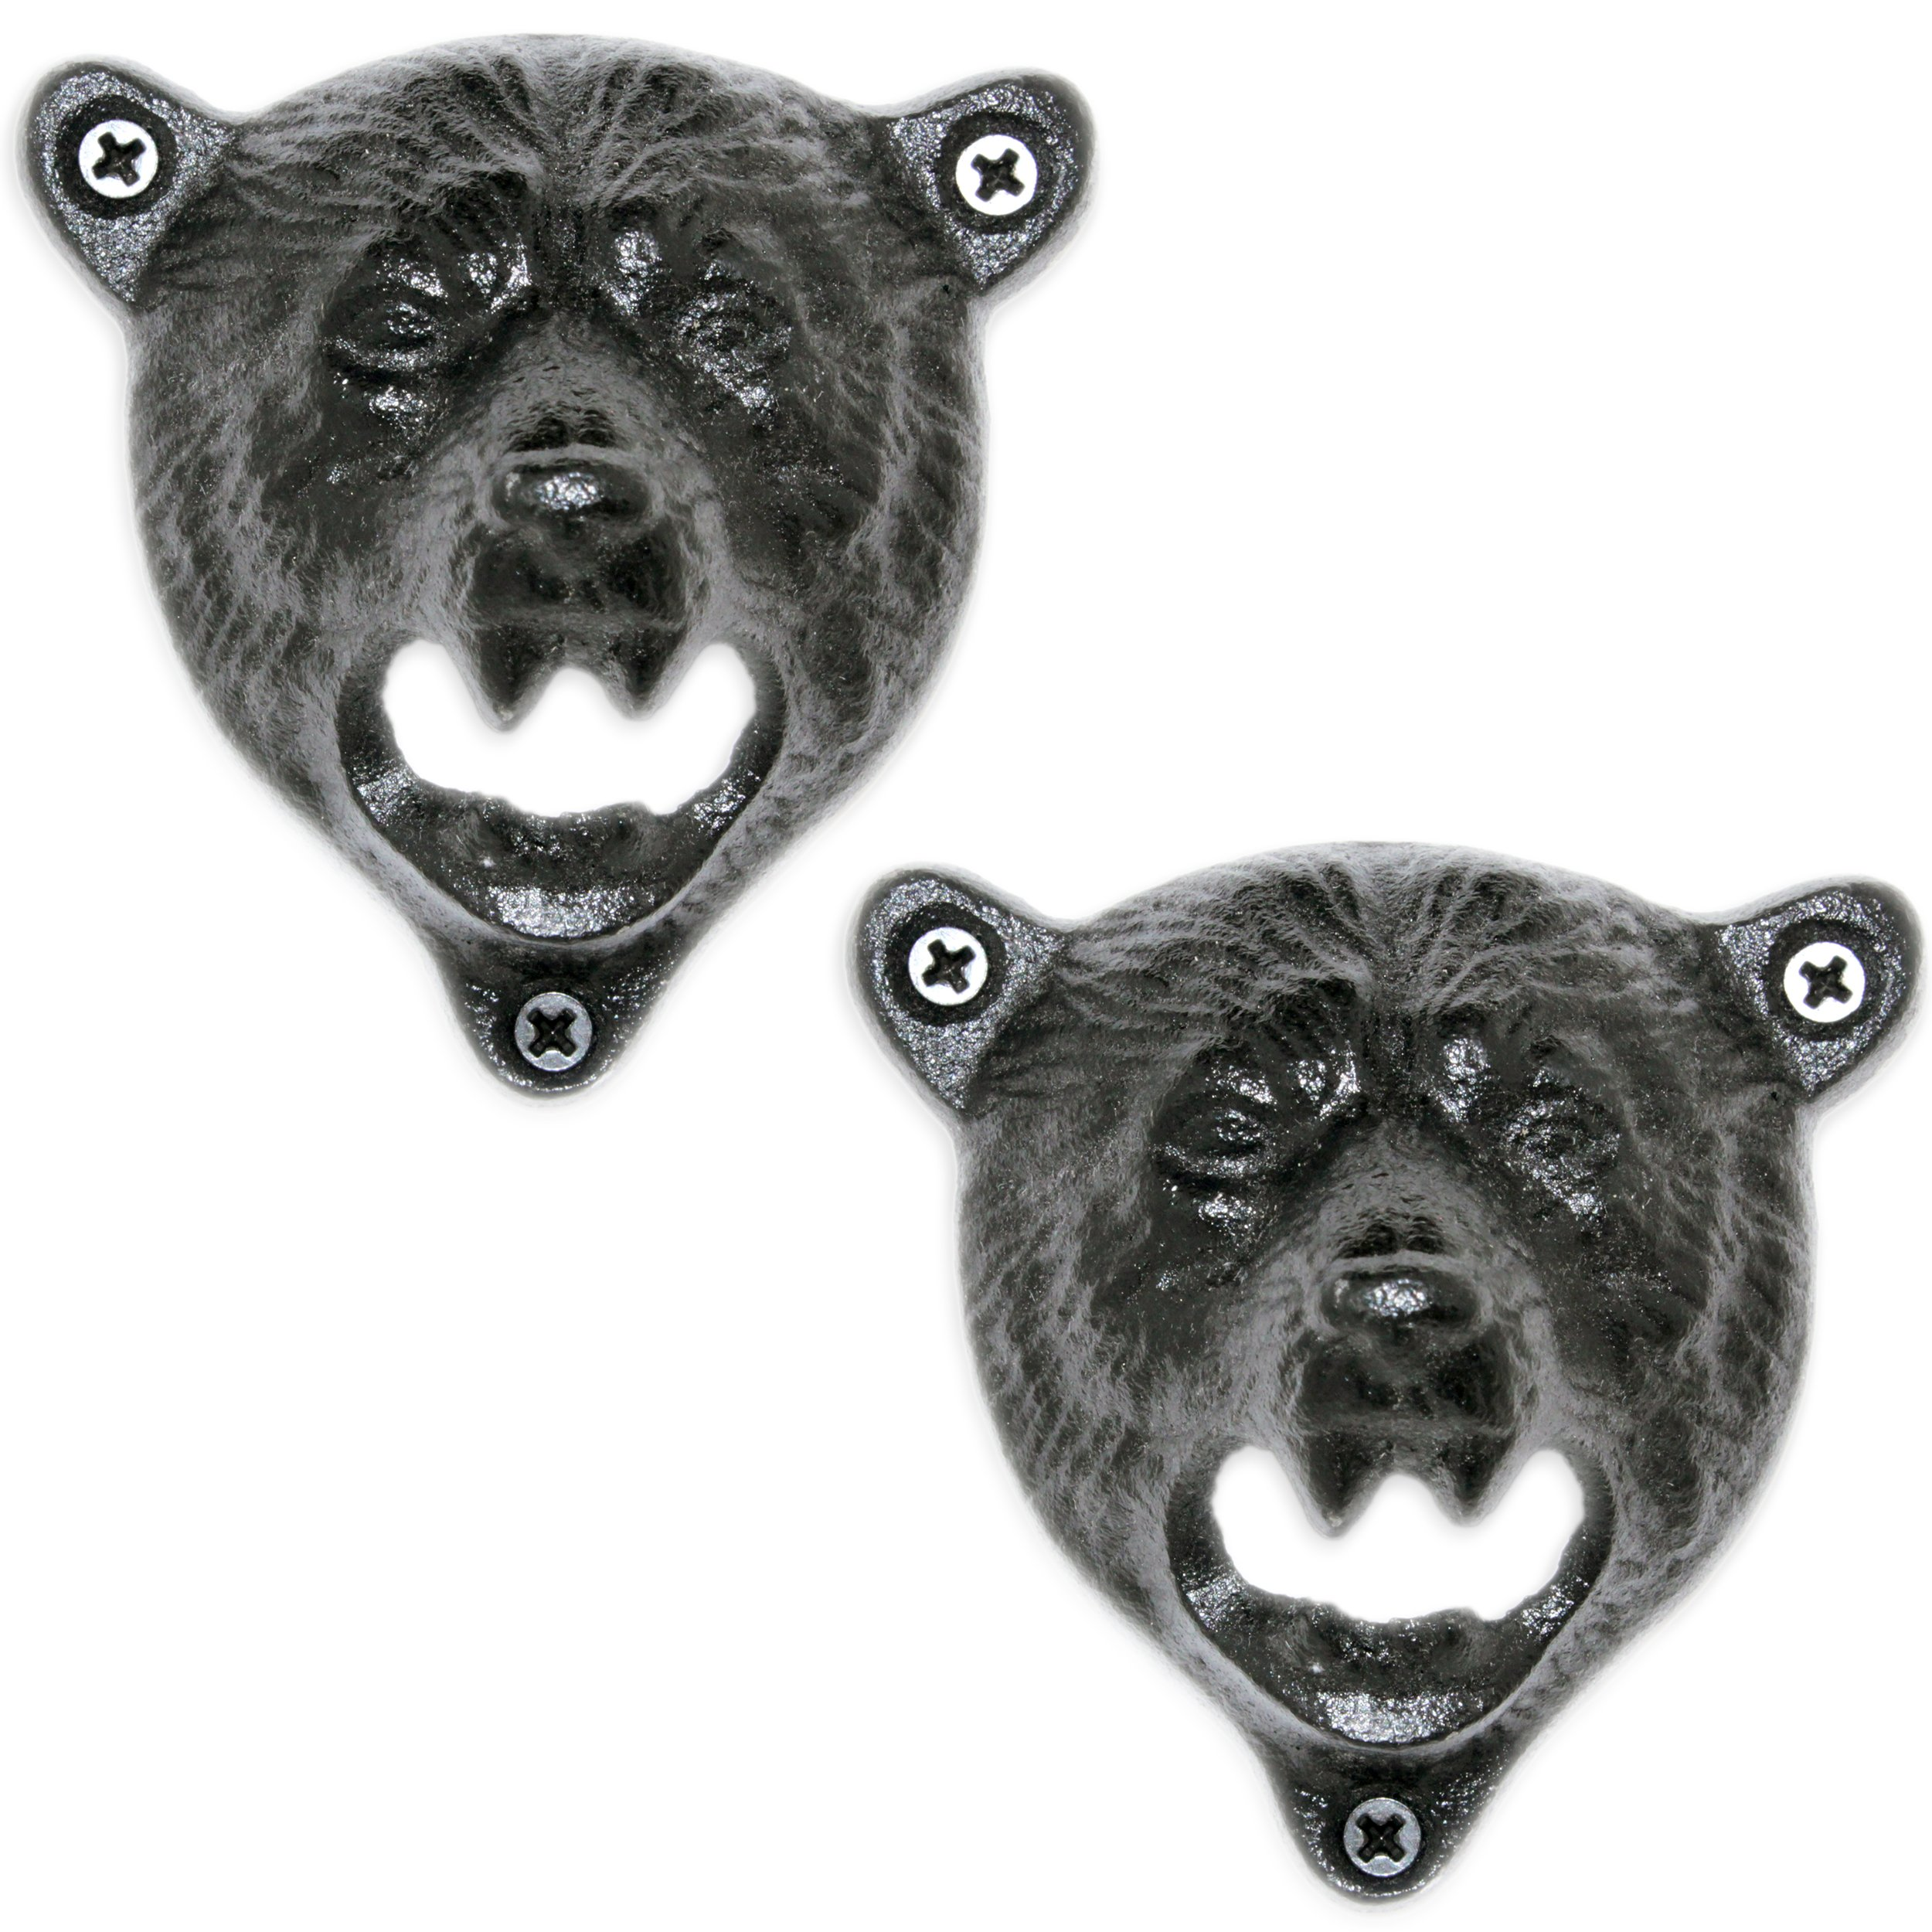 2 Grizzly Bear Wall Mount Beer Bottle Cap Openers   Durable Cast Iron and Black Vintage Finish